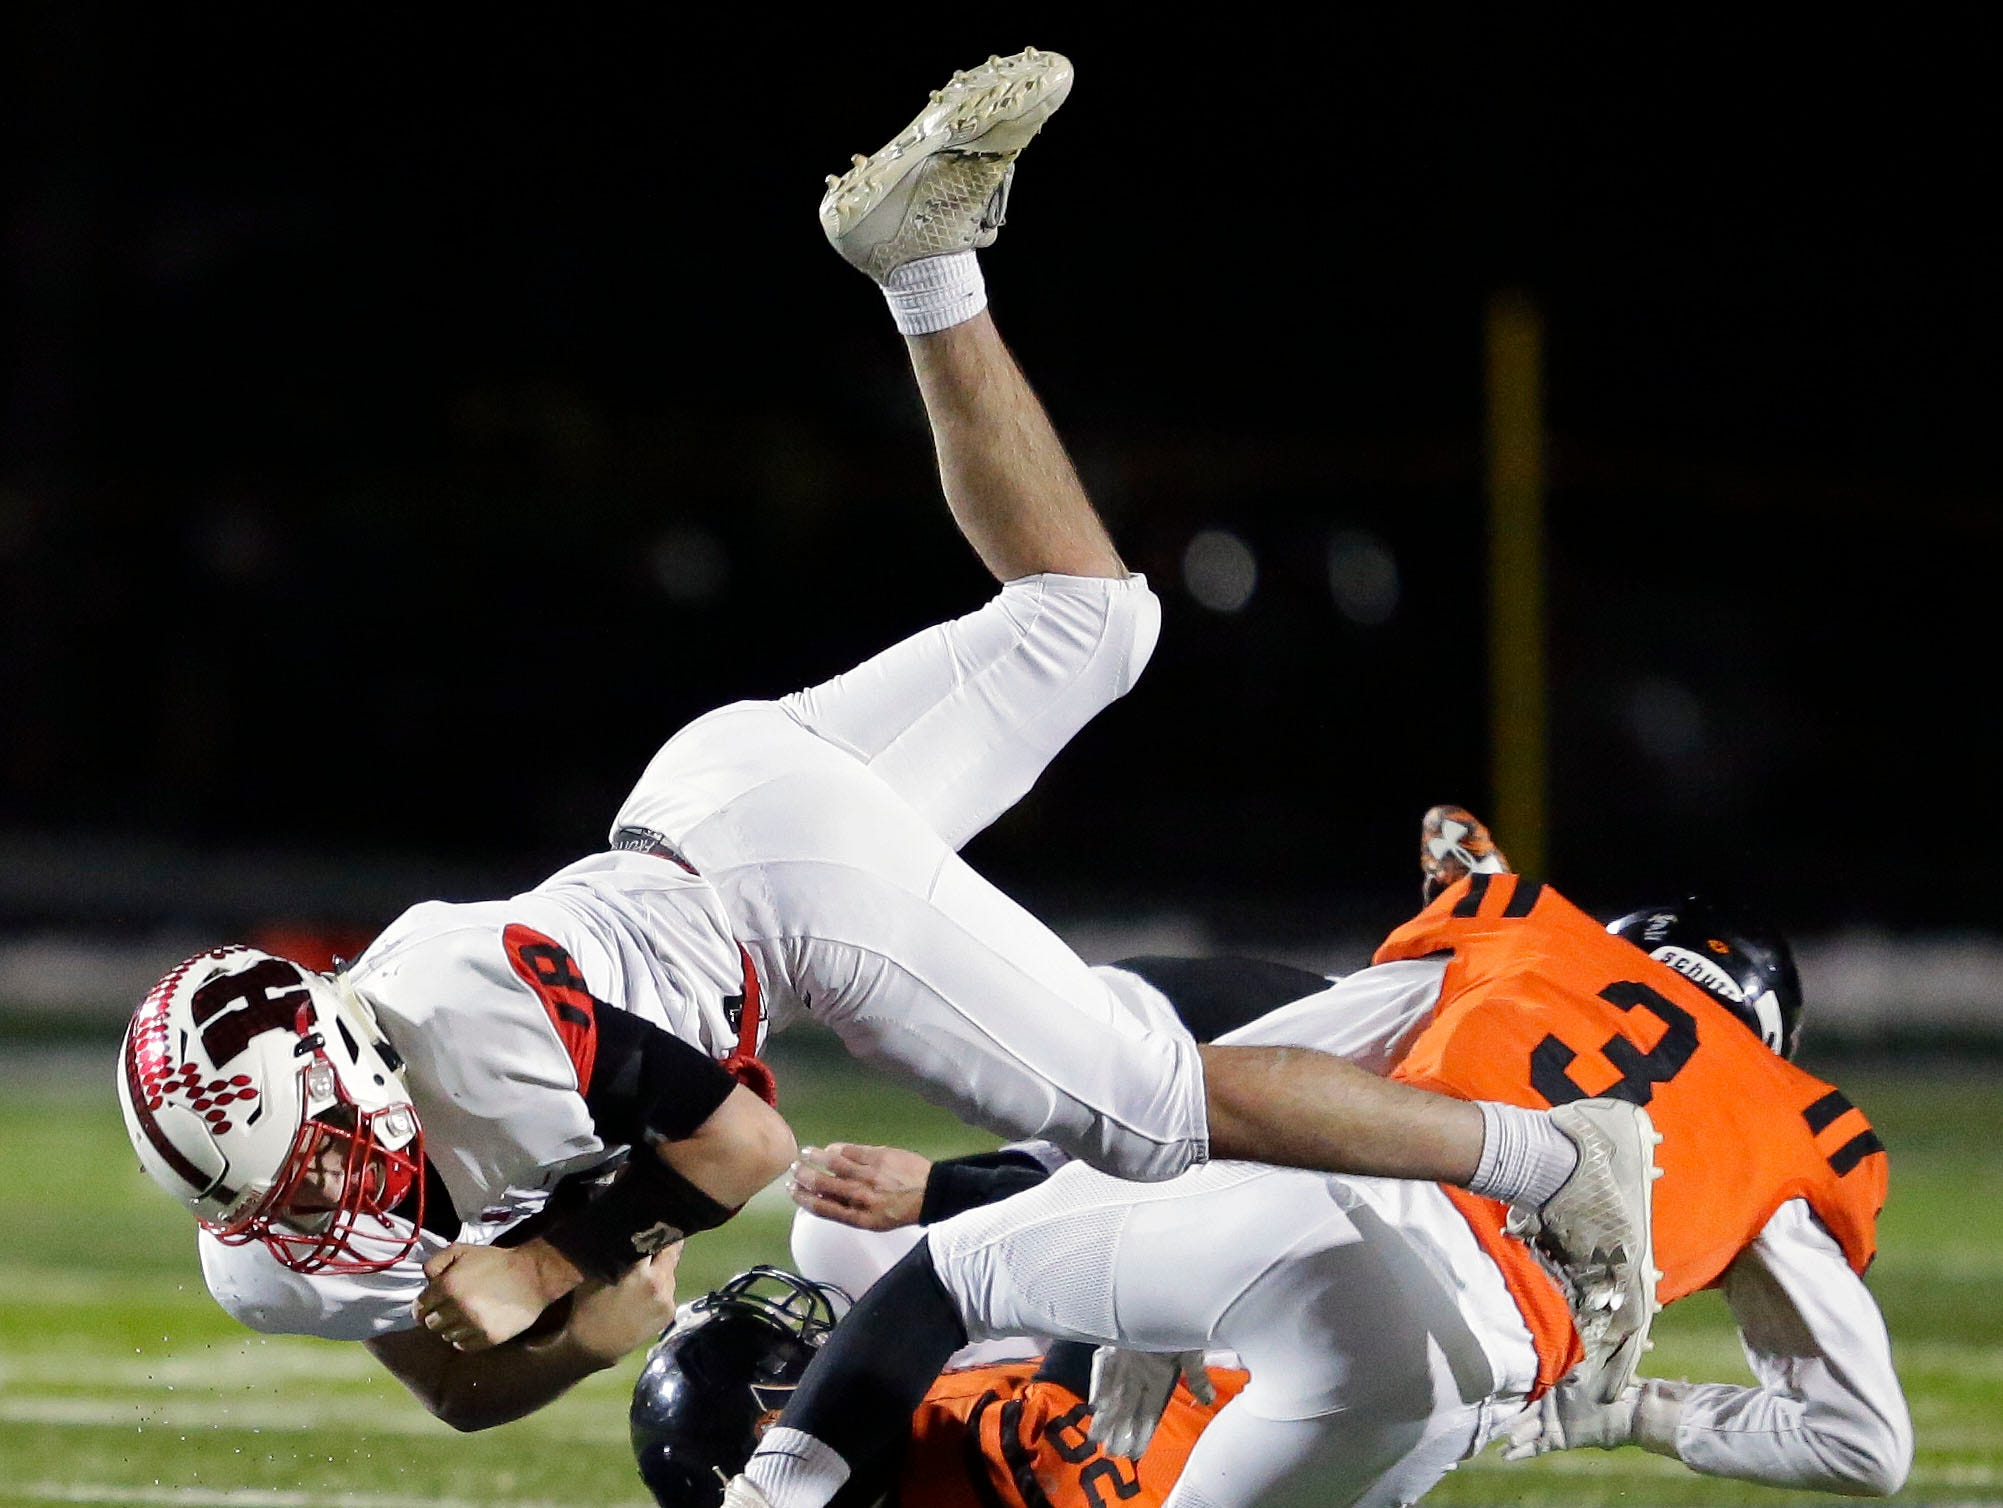 Emory Weeden of Homestead is tackled by Emmett Meissner and Nolan Hertel of Marshfield in a WIAA Division 2 state semifinal football game Friday, November 9, 2018, at Calder Stadium in Menasha, Wis.Ron Page/USA TODAY NETWORK-Wisconsin